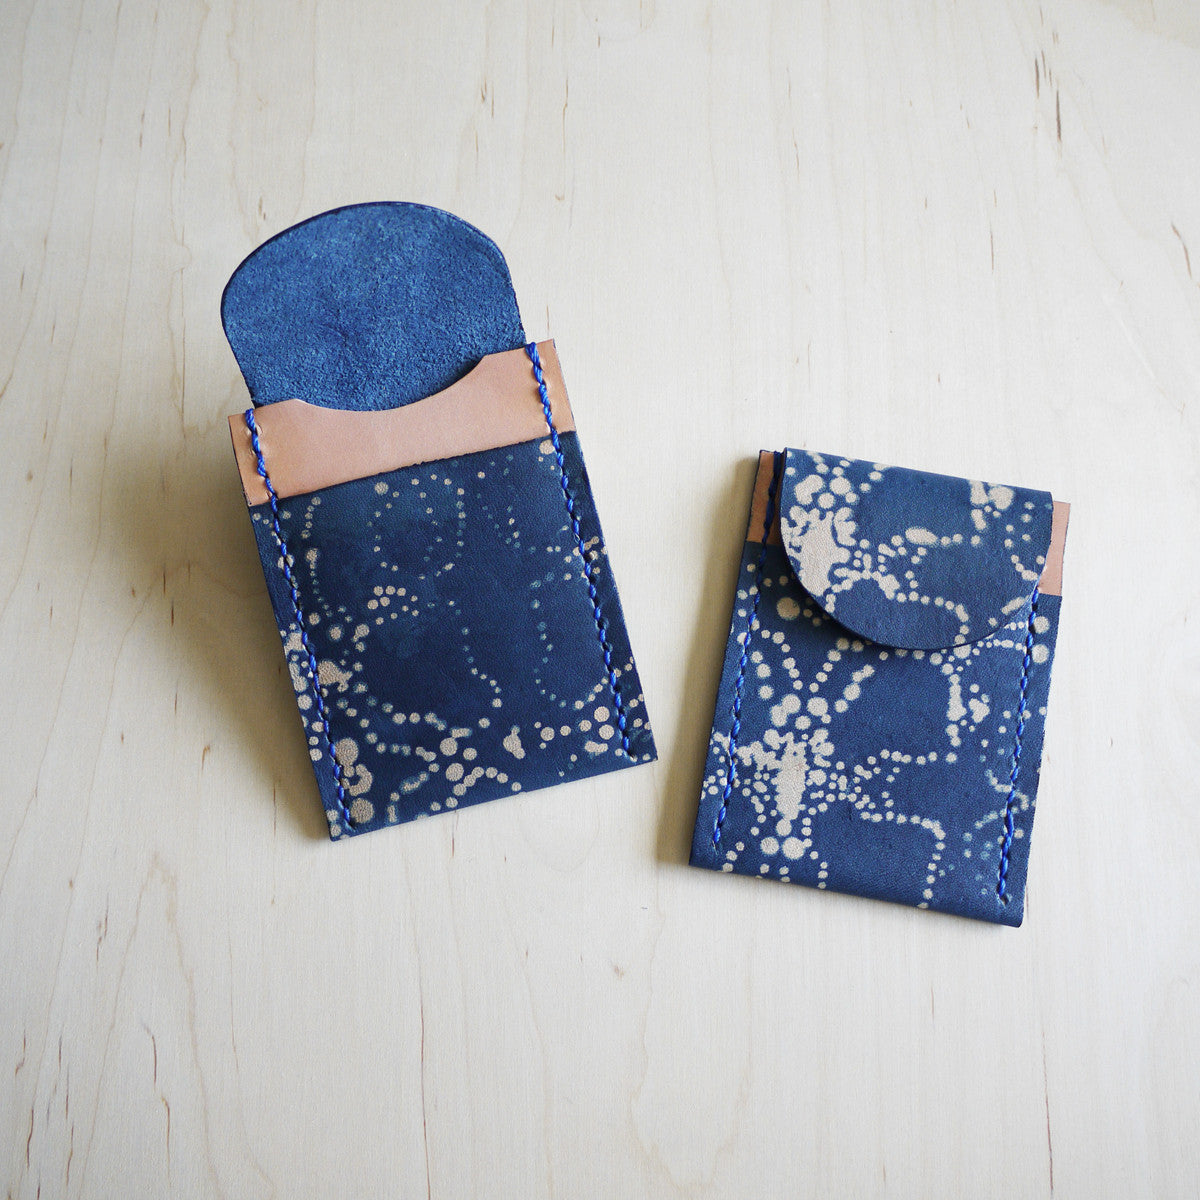 Katazome Indigo Leather, perfect gift for Denim Heads.